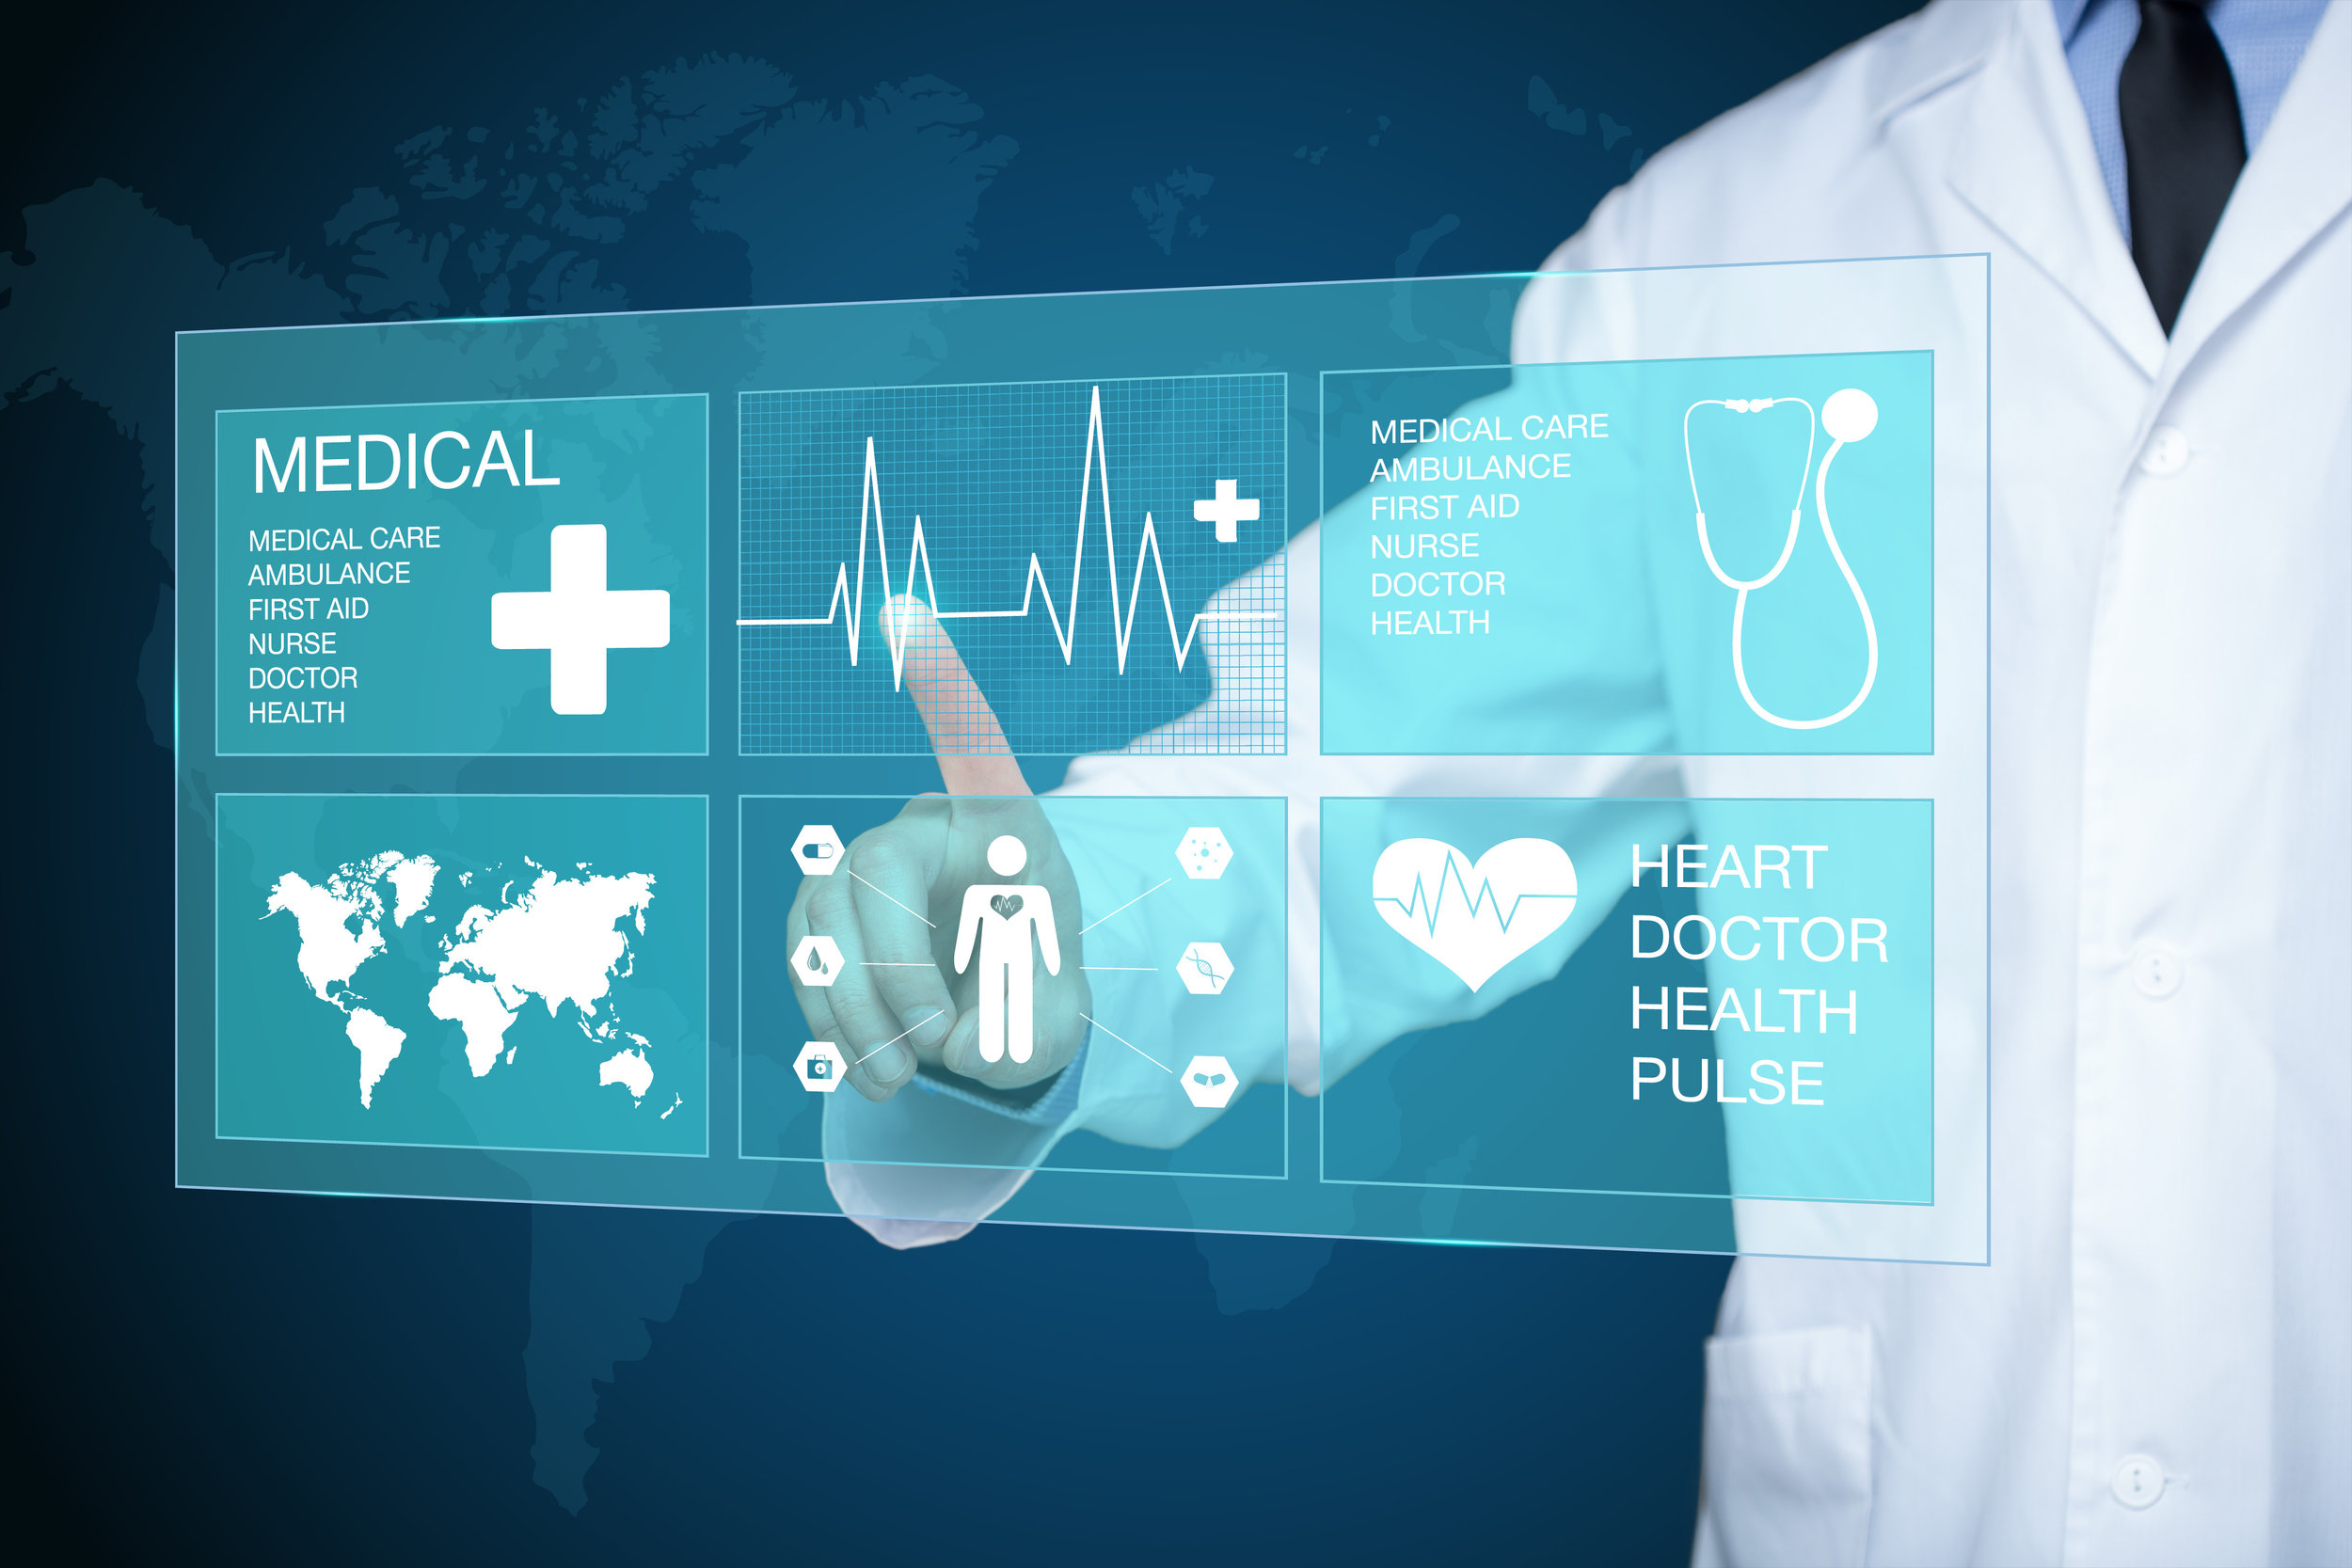 Virtual Check-Ins, Remote Evaluation of Images, Chronic Care Remote Monitoring, and more.jpg